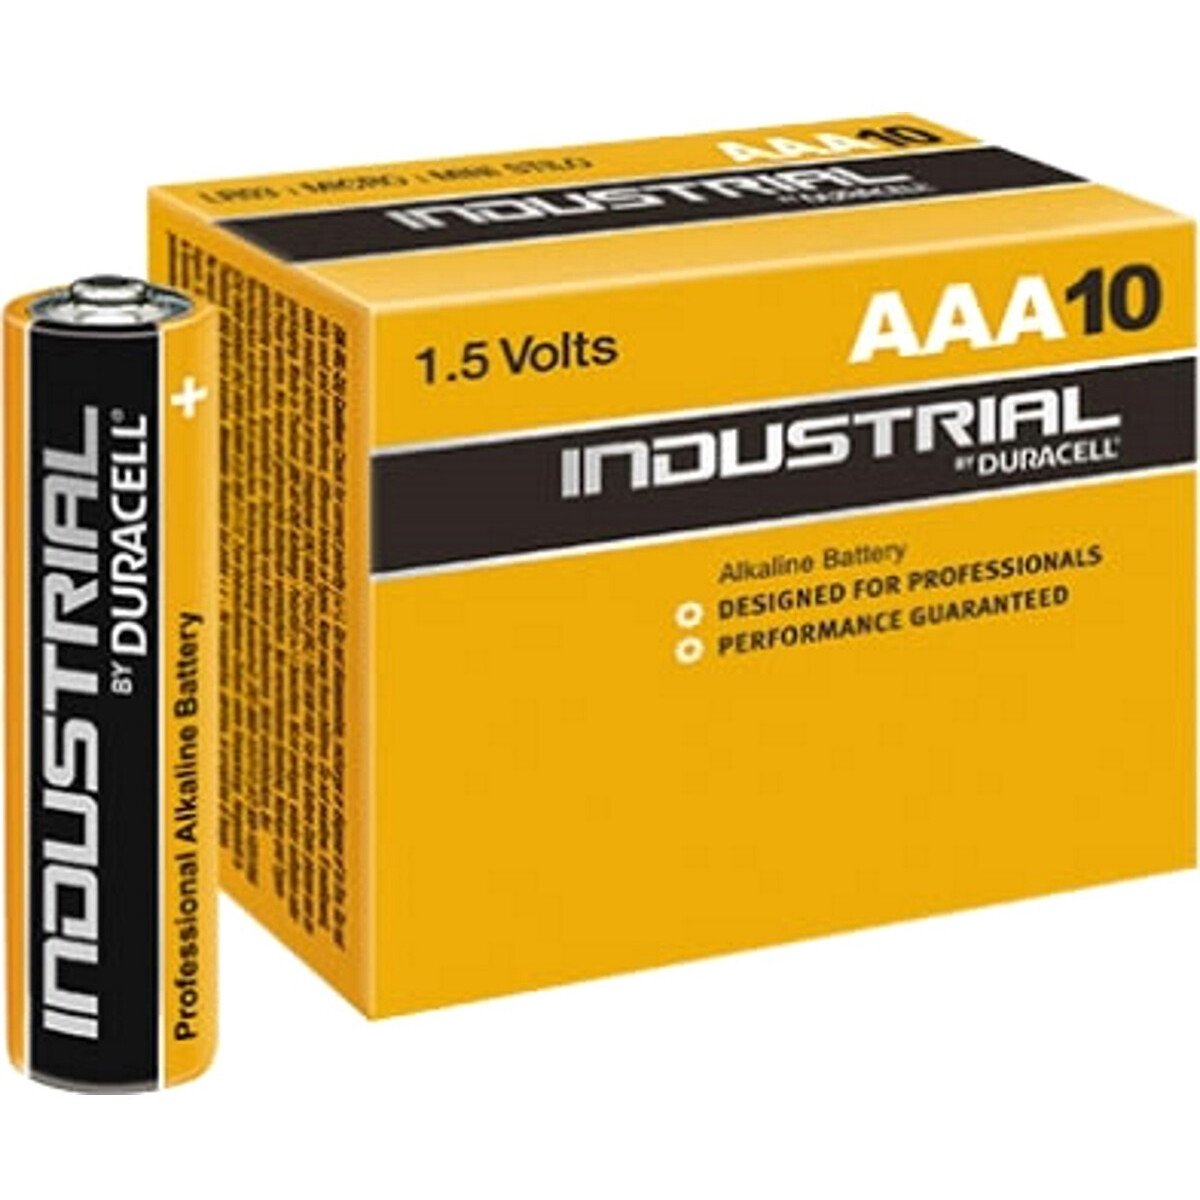 Duracell ID2400 AAA LR03 Industrial /Procell Alkaline Batteries Box of 10